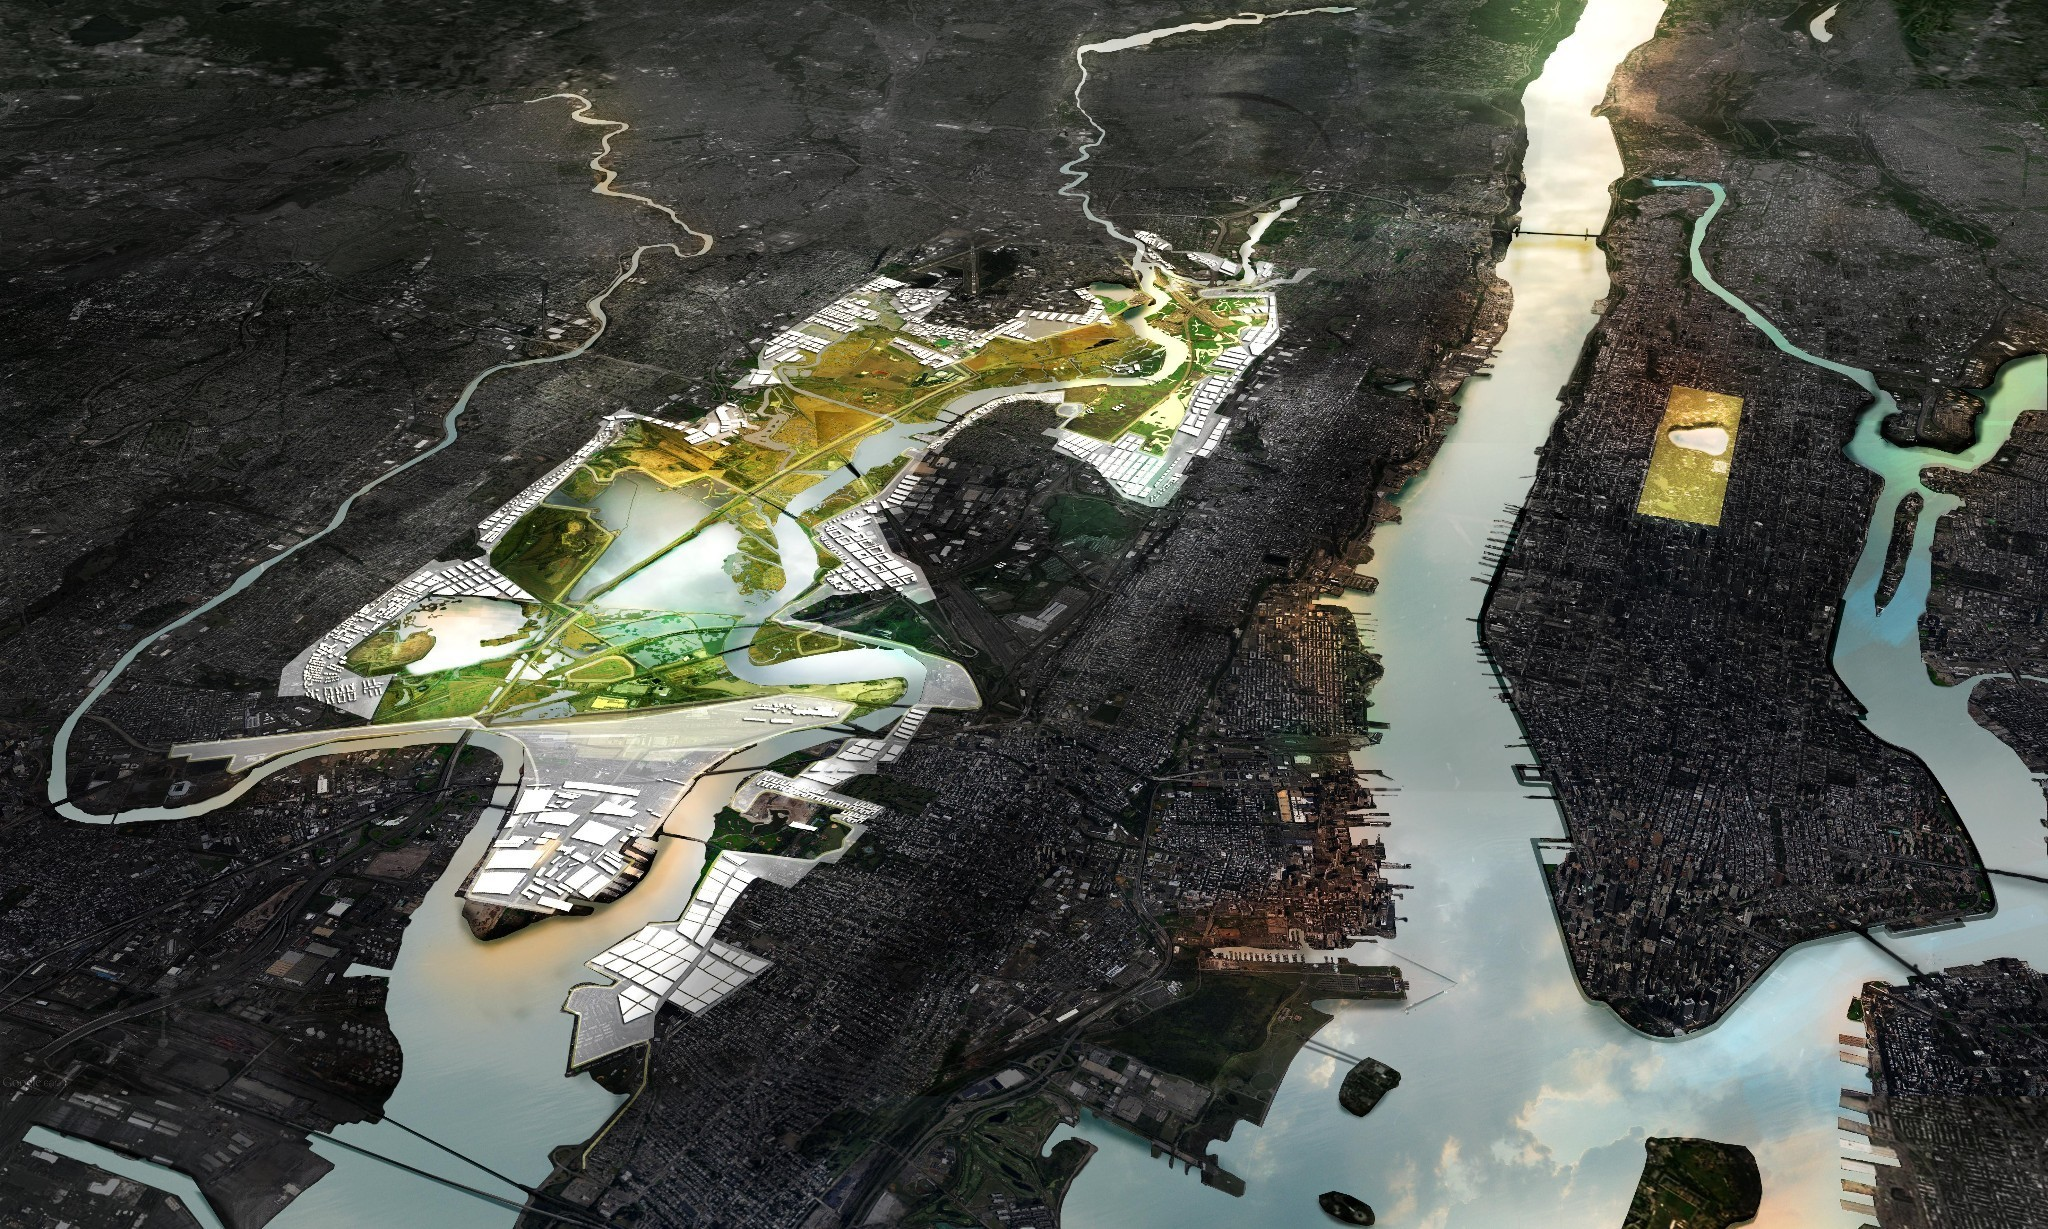 What would an entirely flood-proof city look like?